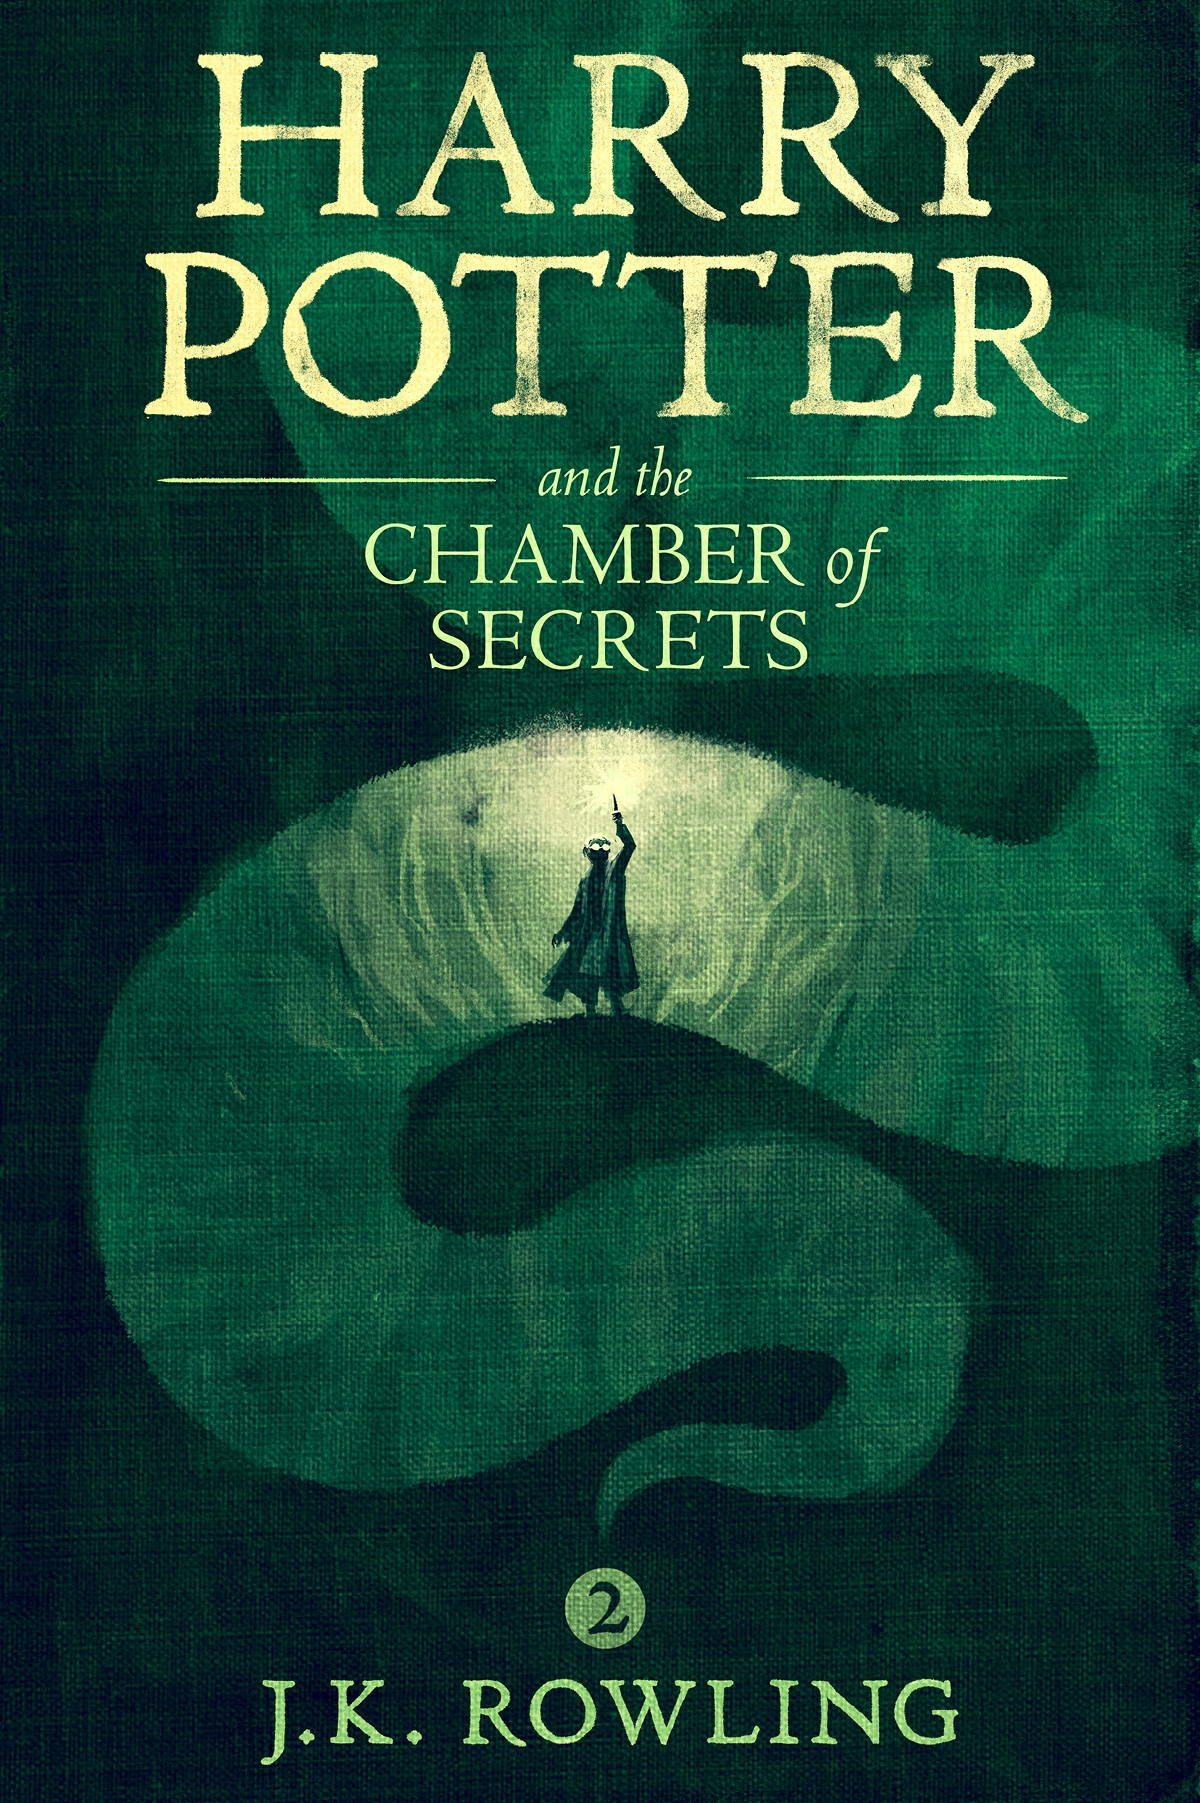 Harry Potter and the Chamber of Secrets. Джоан Кэтлин Роулинг